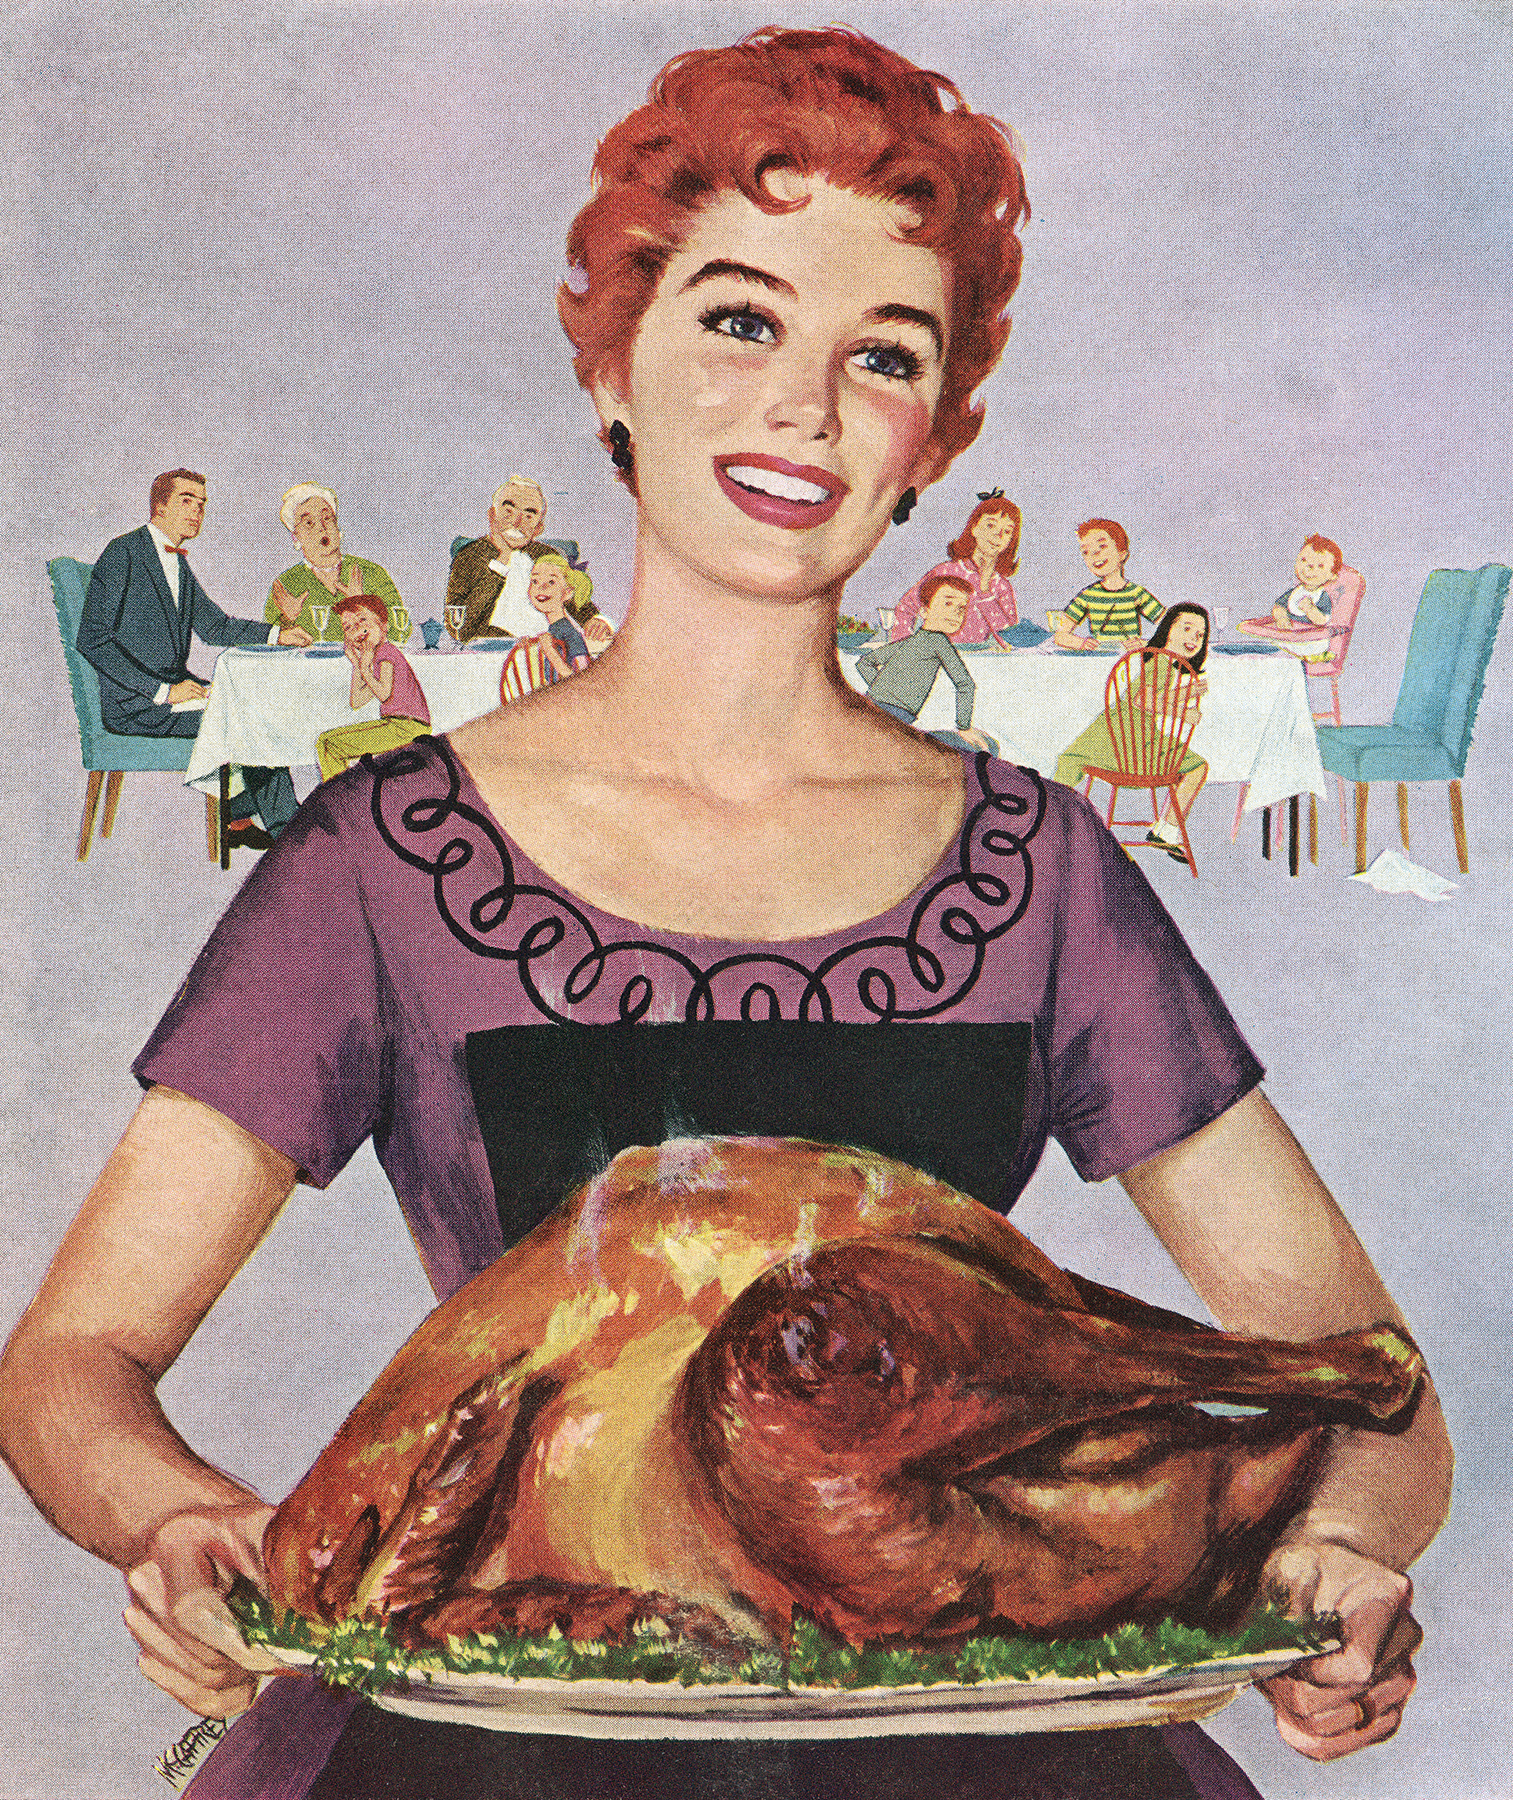 Your Guide to a Pleasant (and Politics-Free) Thanksgiving With Your Family